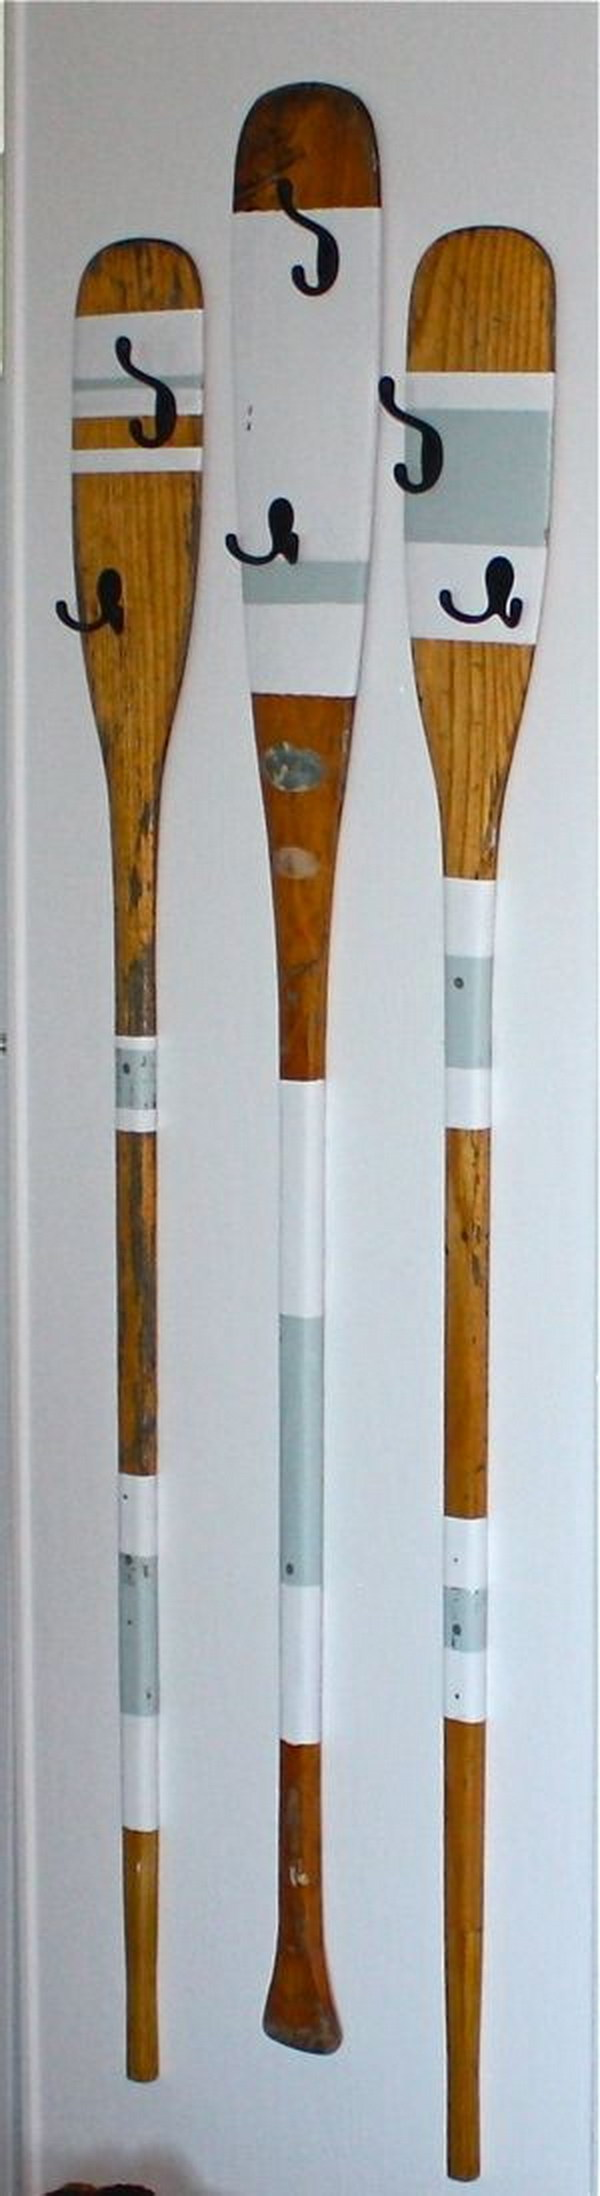 Upcycled Rowing Oars Coat Hangers.